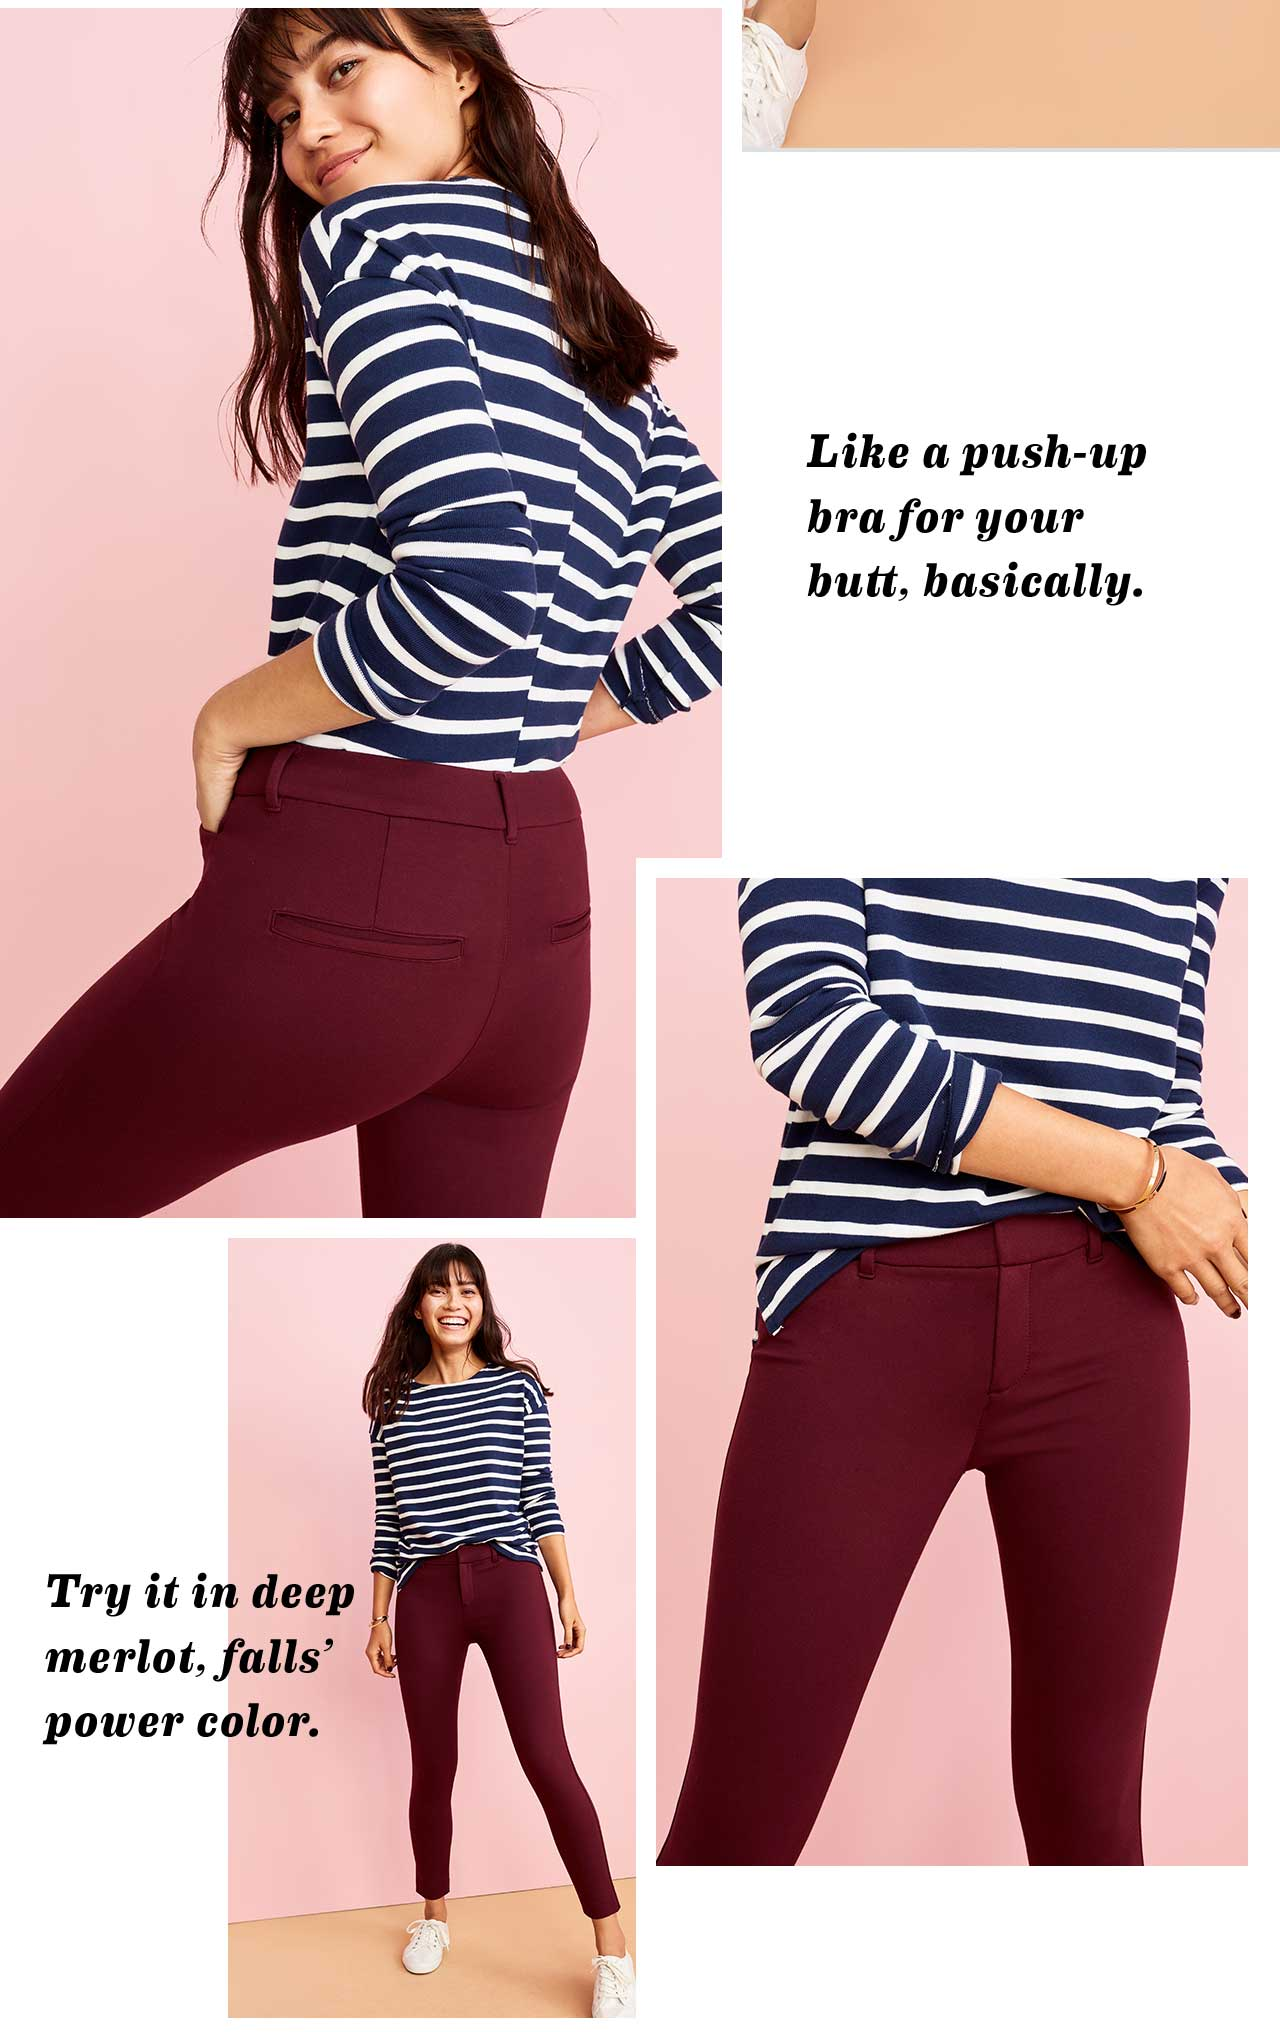 Like a push-up bra for your butt, basically. | Try it in deep merlot, falls' power color.